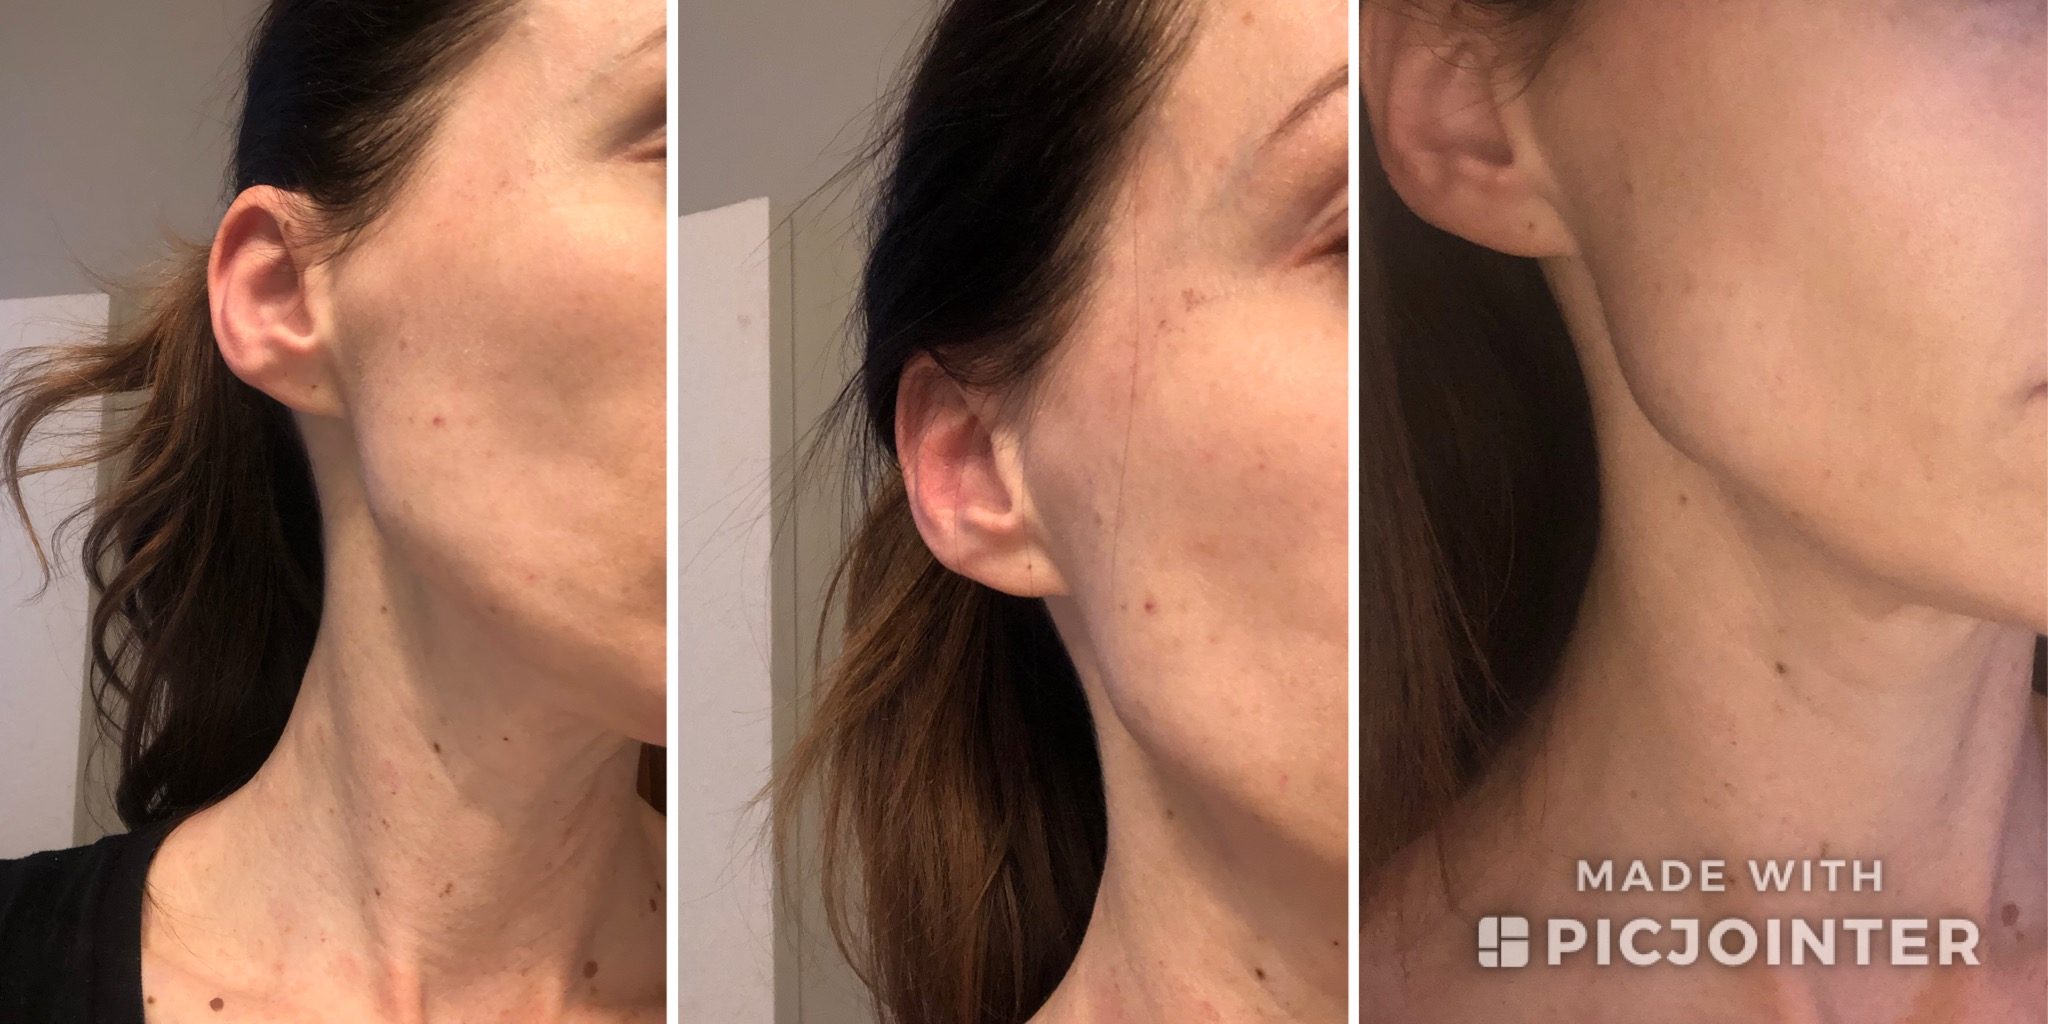 Face progression for the week following my the second session (you can see the slight swelling I tend to get from the IPL in the first photo but it's typically gone within 48 hours). Also the pigment does get darker before it sloughs off which is why it looks at least as noticeable (if not slightly more so) in the second photo.